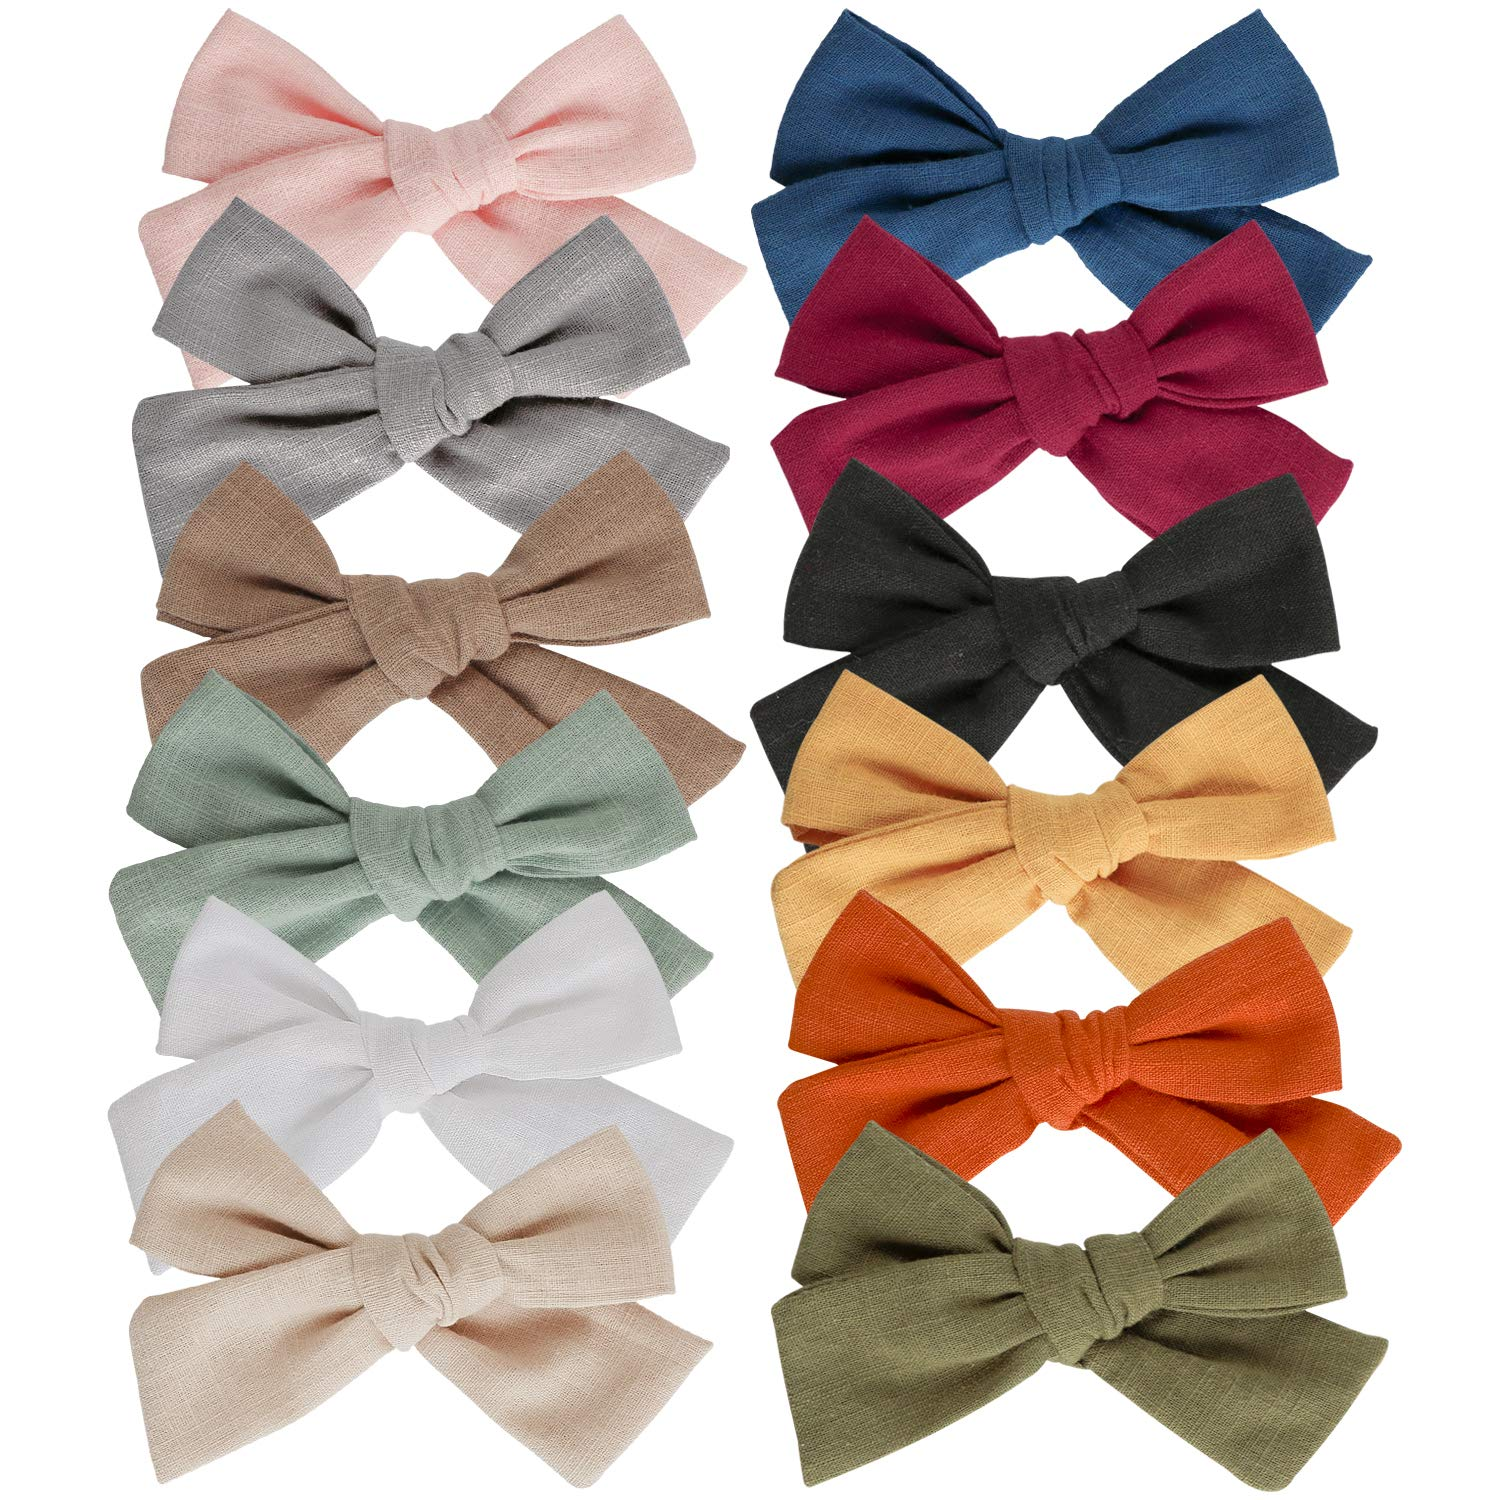 Baby Girl Max 68% OFF Hair Clips Bows Alligator Barrettes Fully Quality inspection Lined Clip